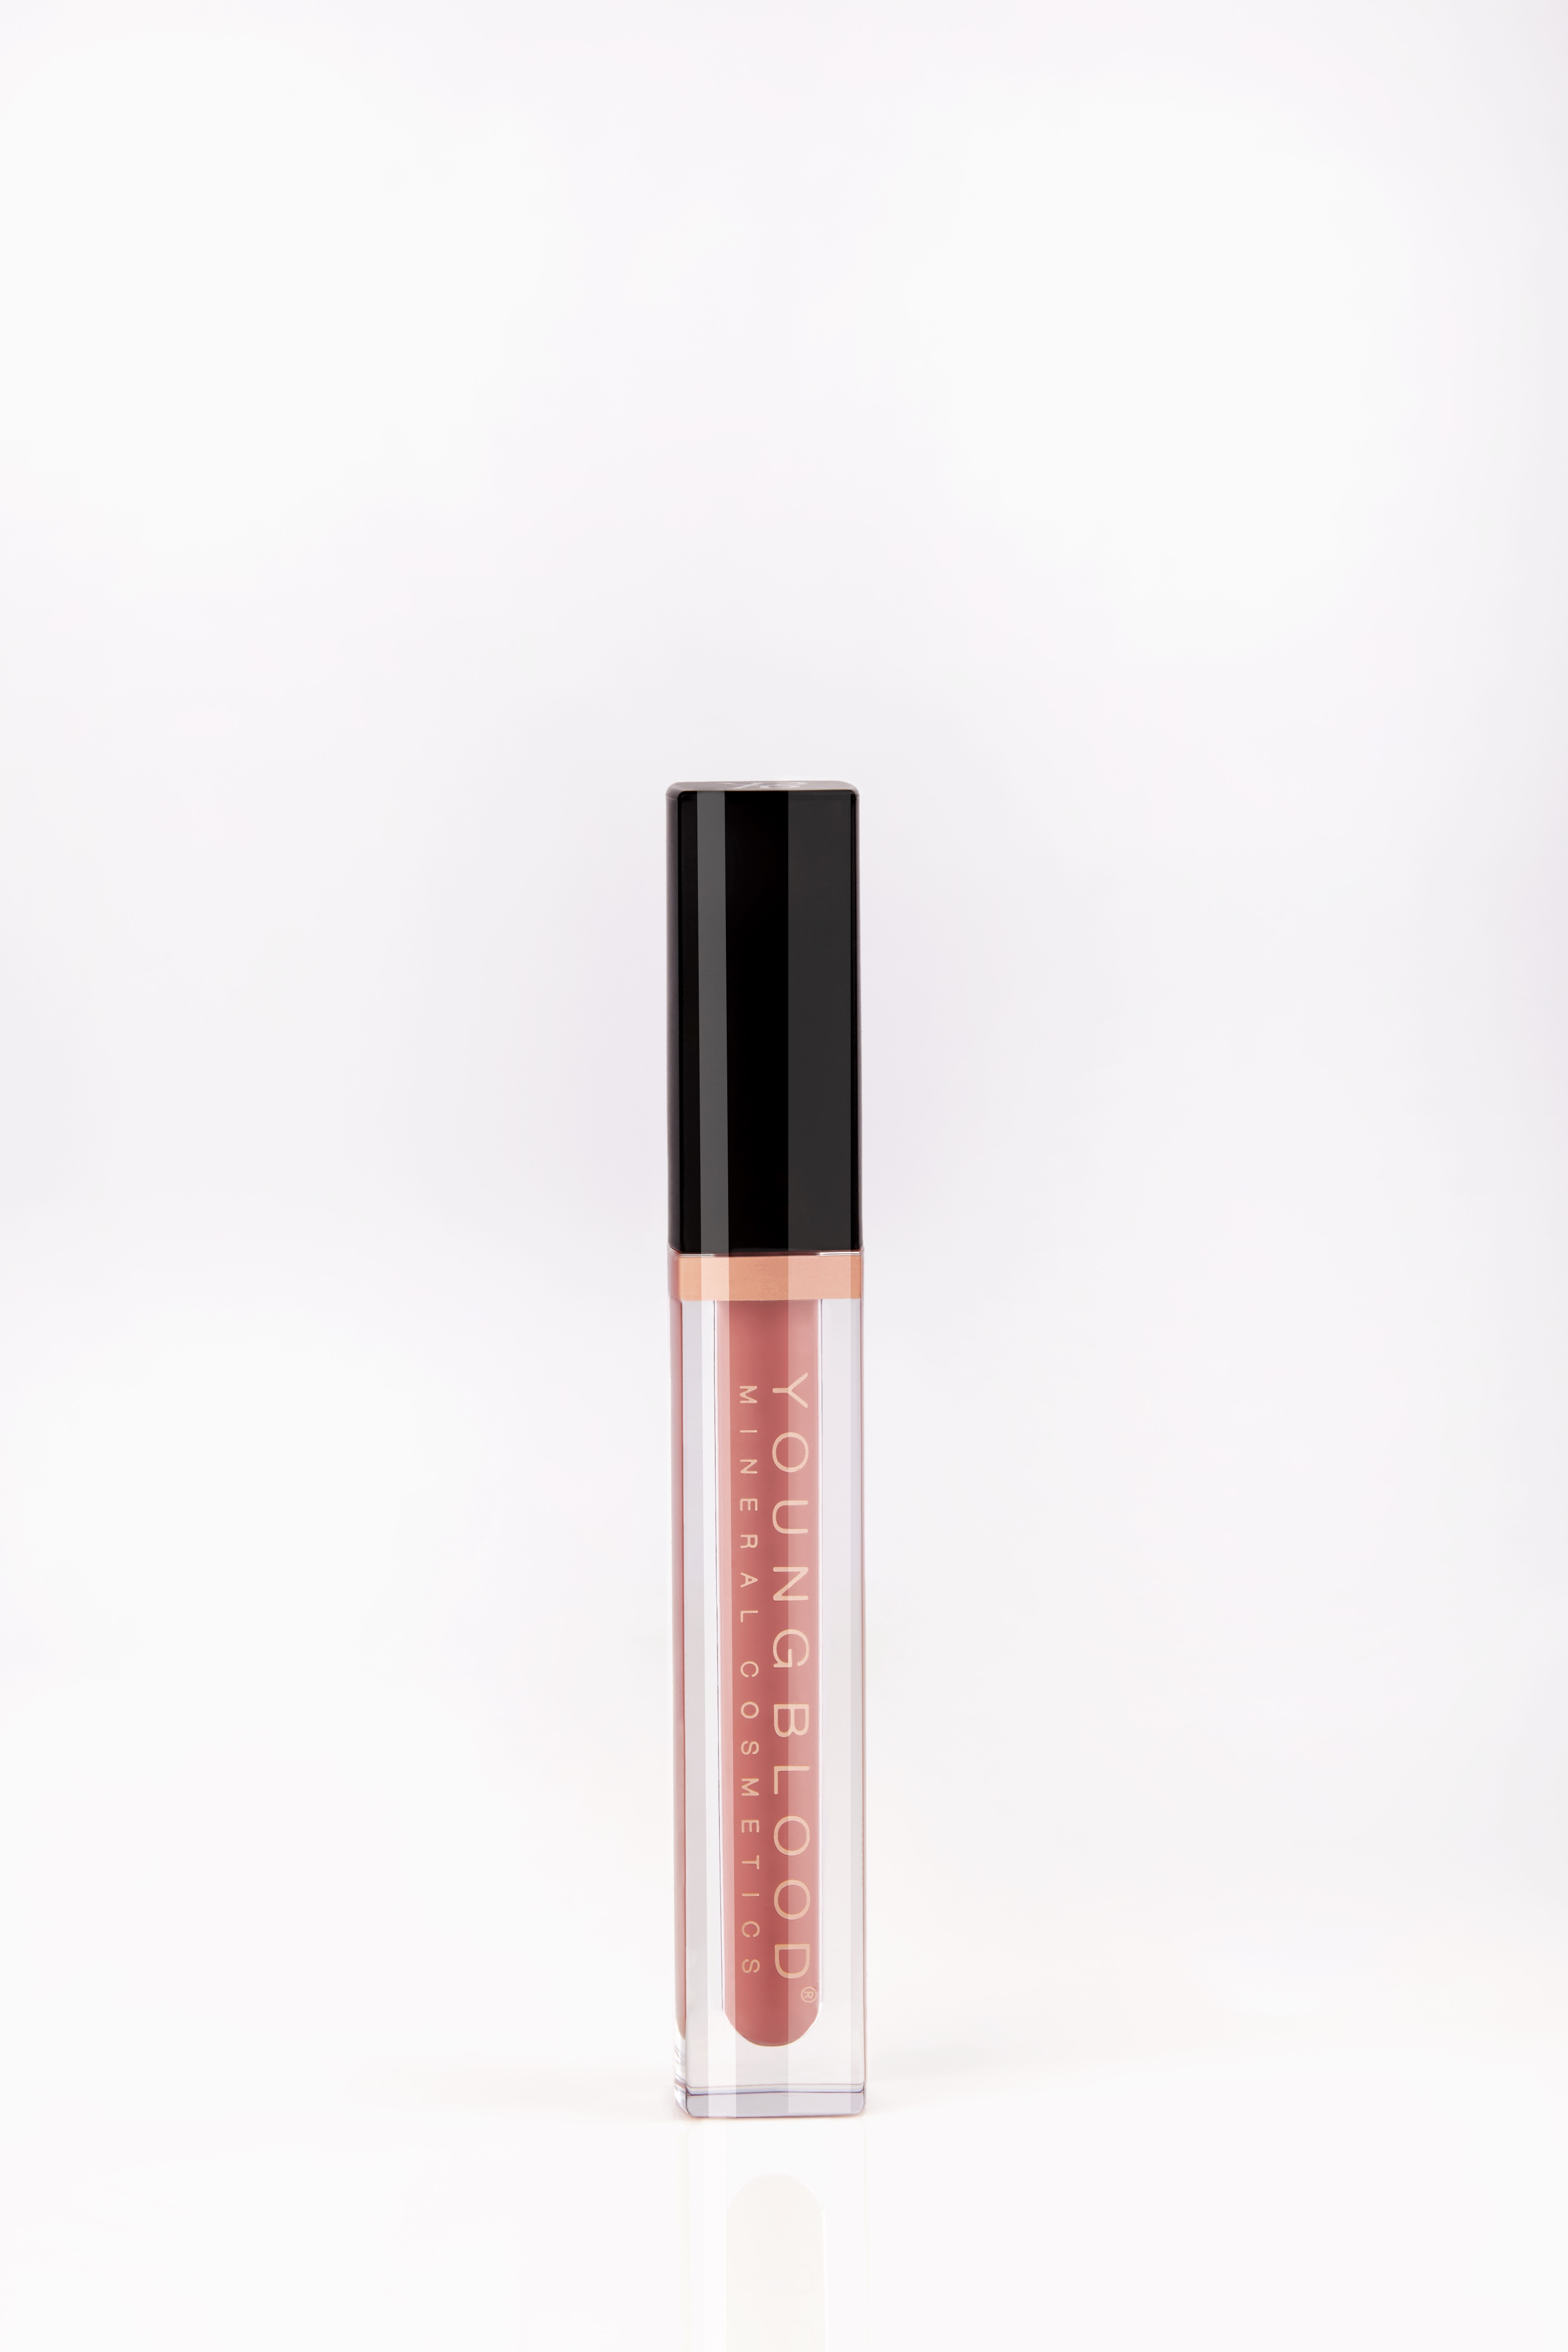 Youngblood Hydrating Lip Créme, chic